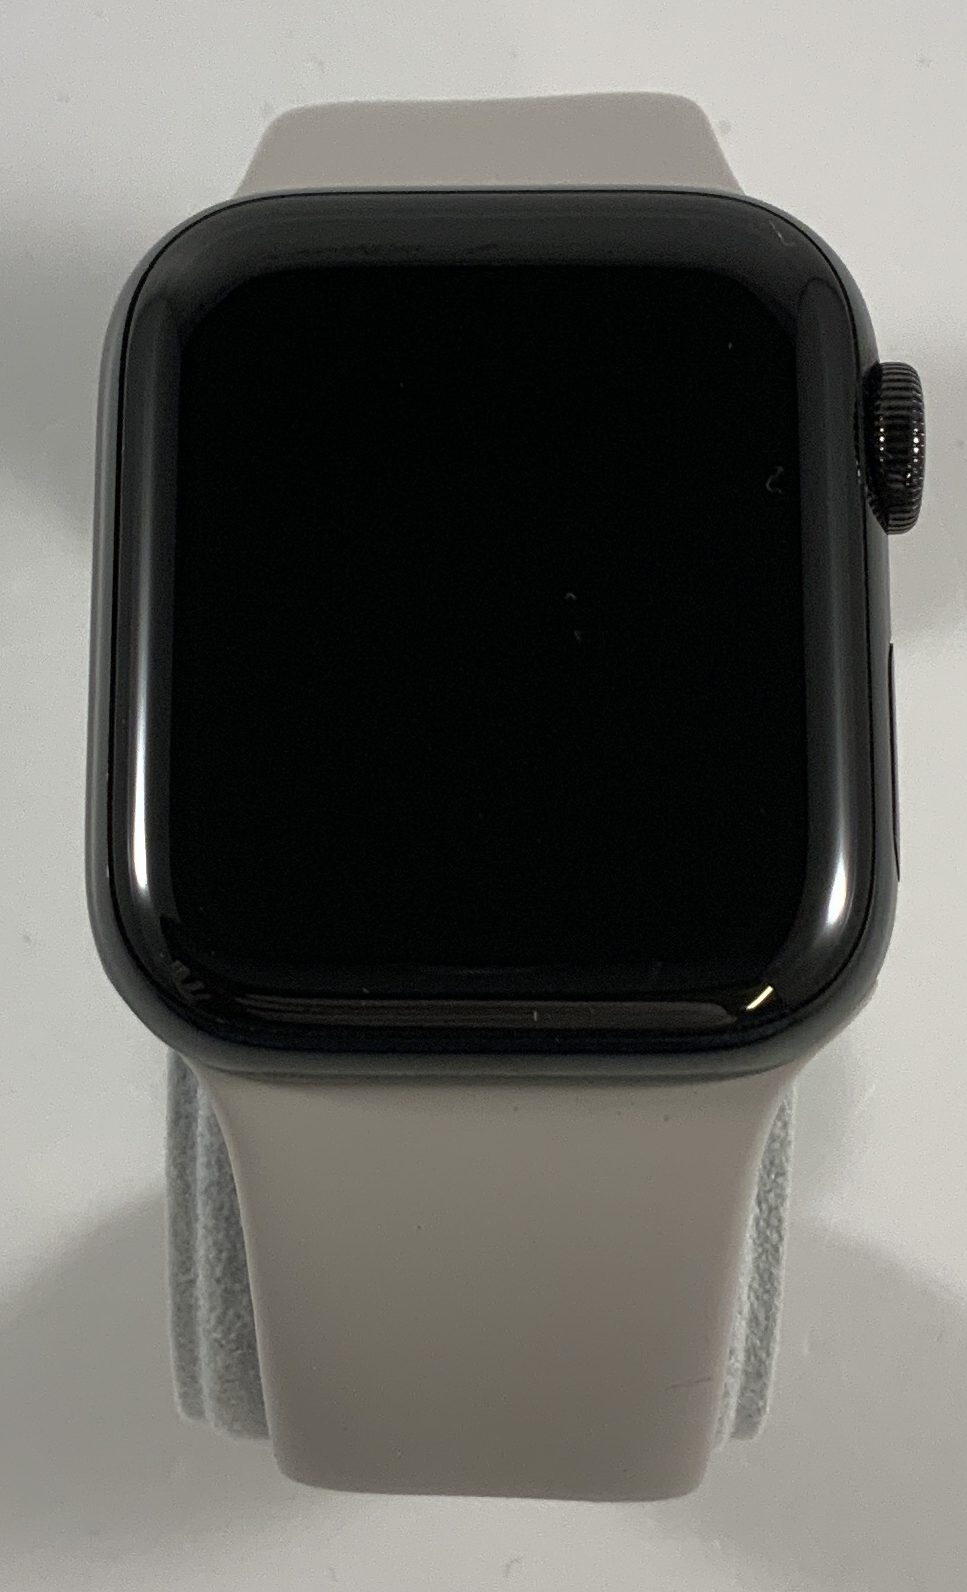 Watch Series 5 Steel Cellular (40mm), Space Black, immagine 1